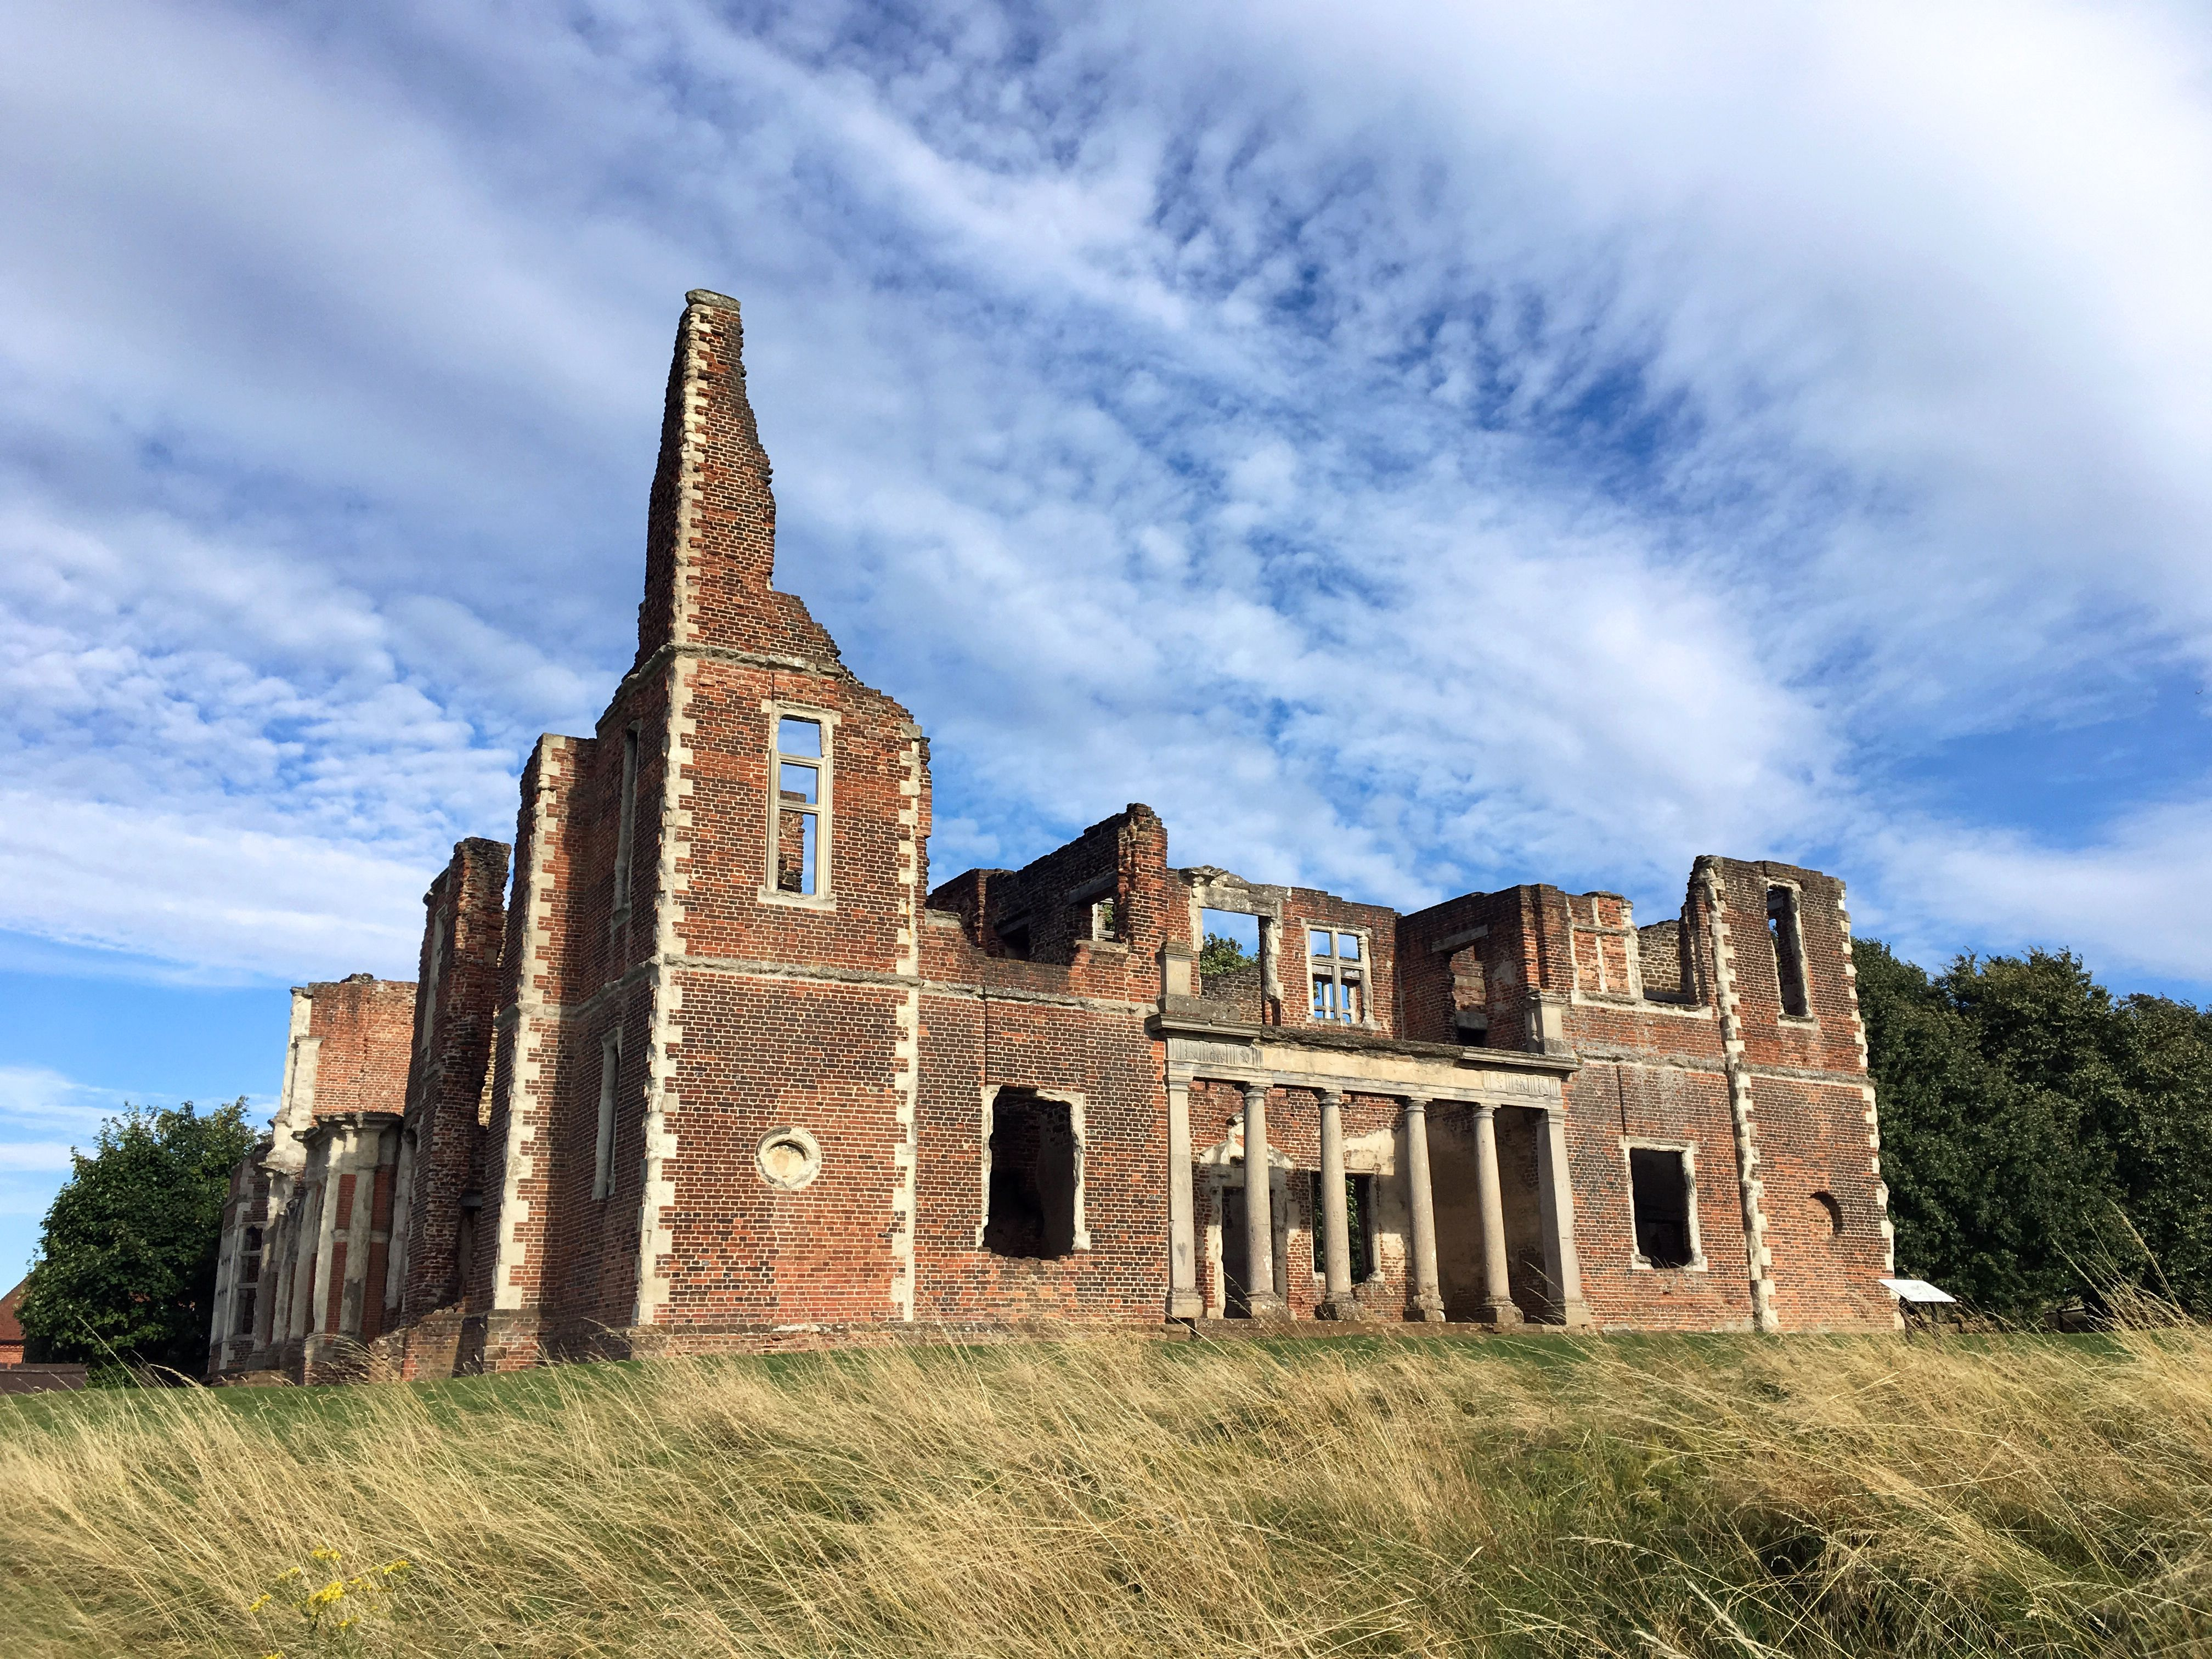 Old Ruins Of Houghton House On Grassy Field Against Sky